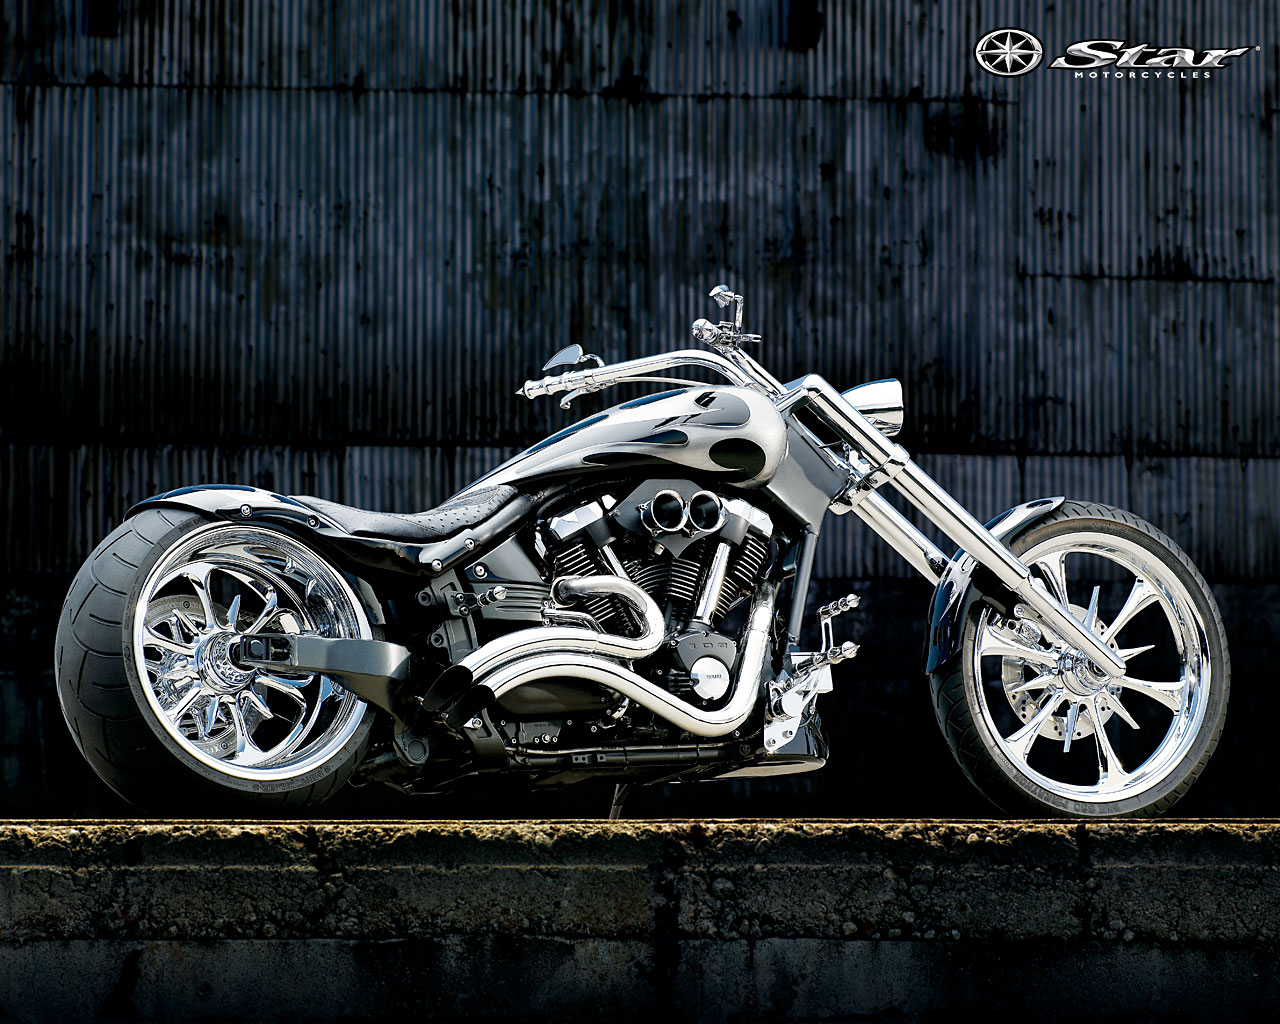 Cool Desktop Wallpaper: Chopper Bikes Desktop Wallpapers